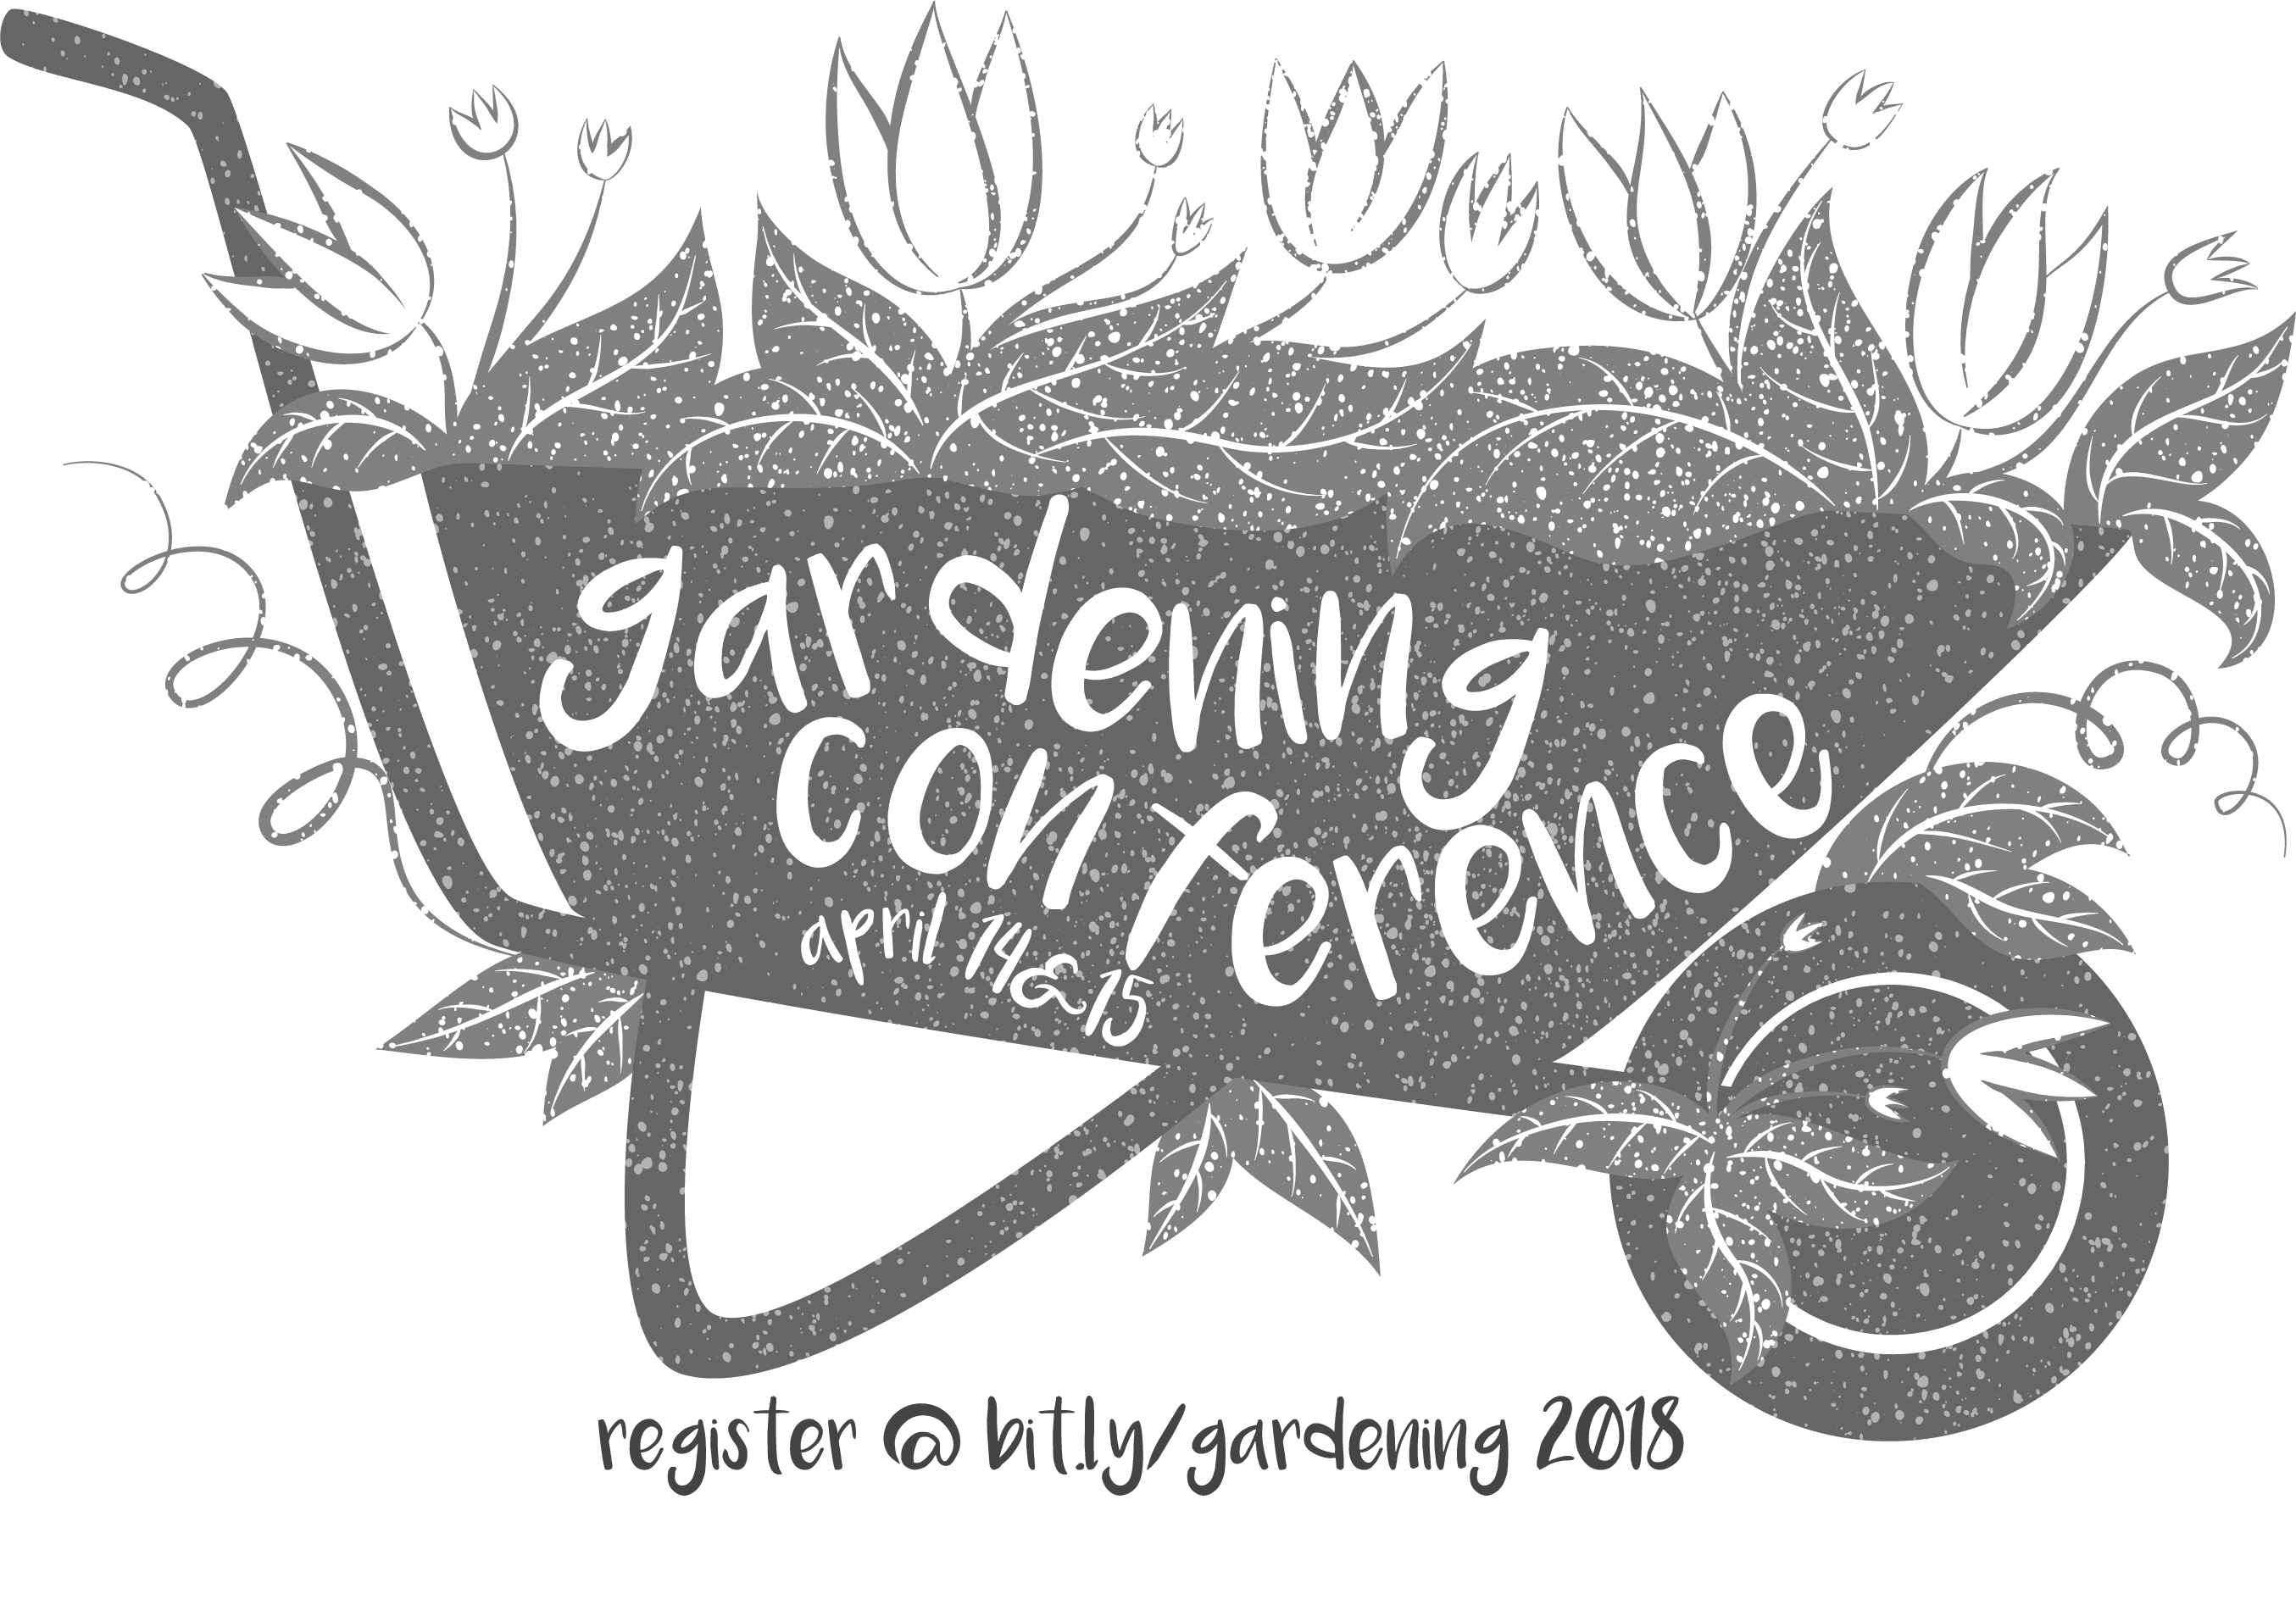 Watering can as the garden conference logo.